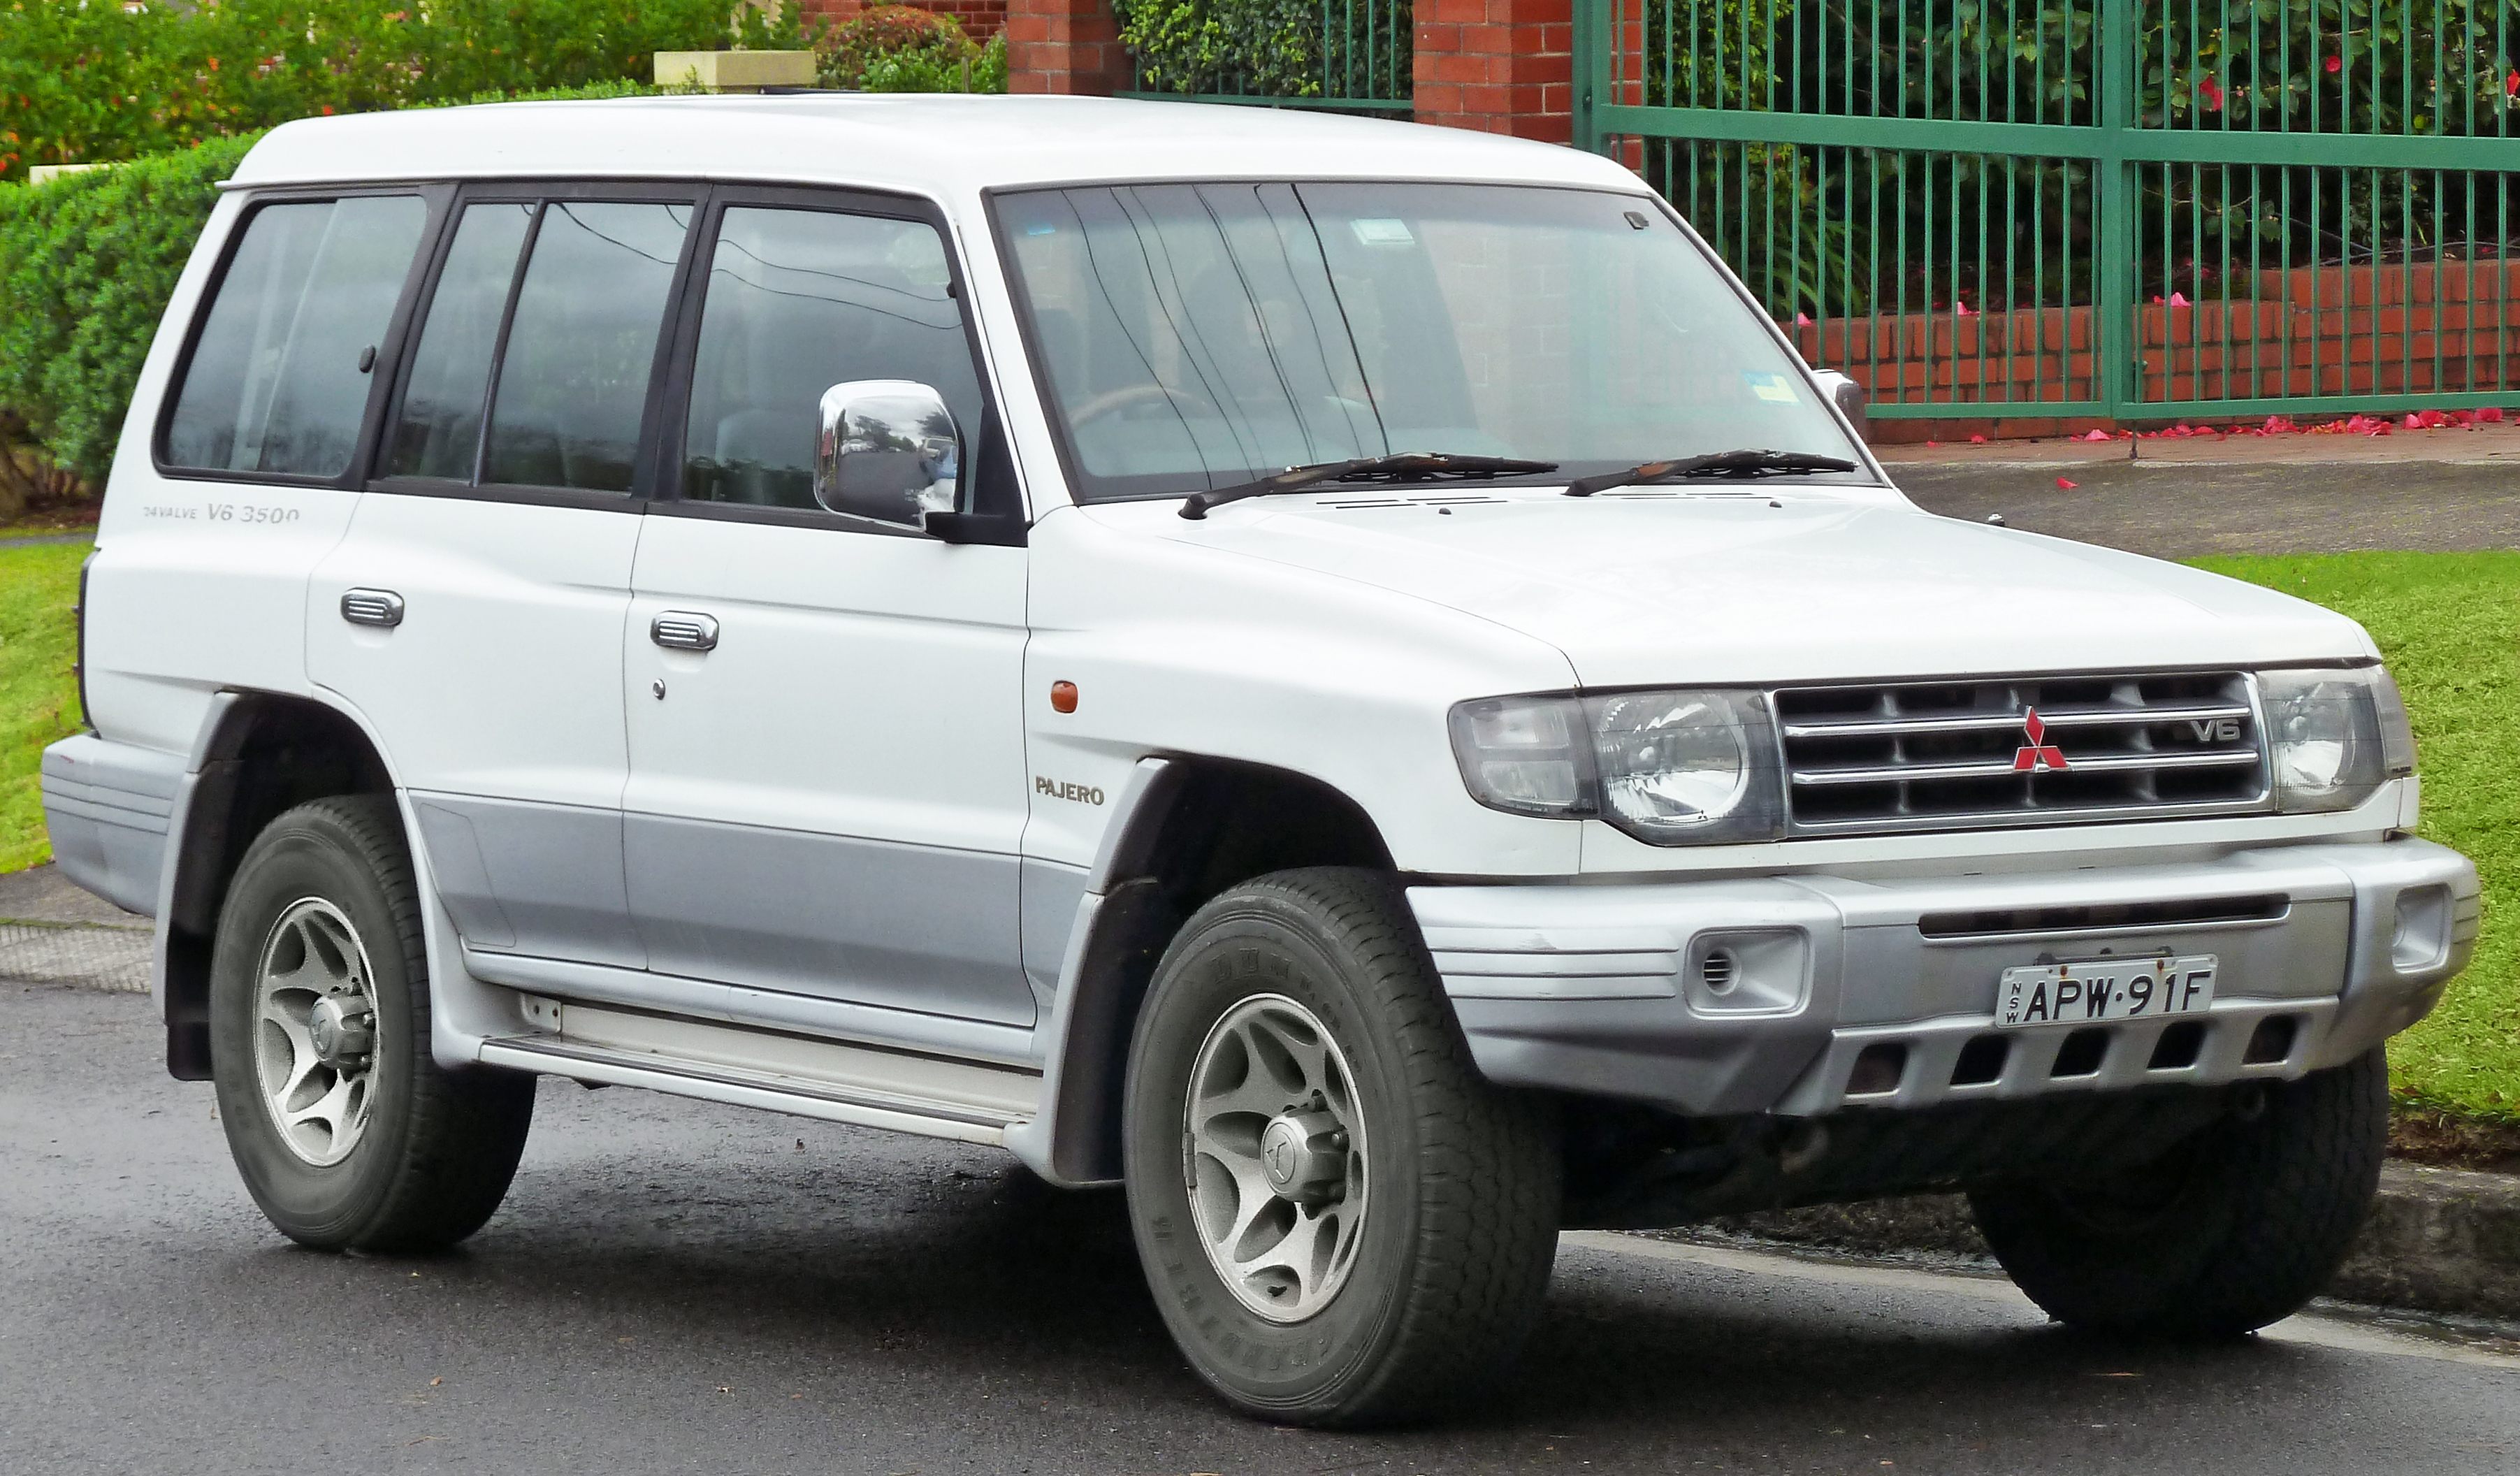 2000 Mitsubishi Pajero iii – pictures, information and specs - Auto-Database.com